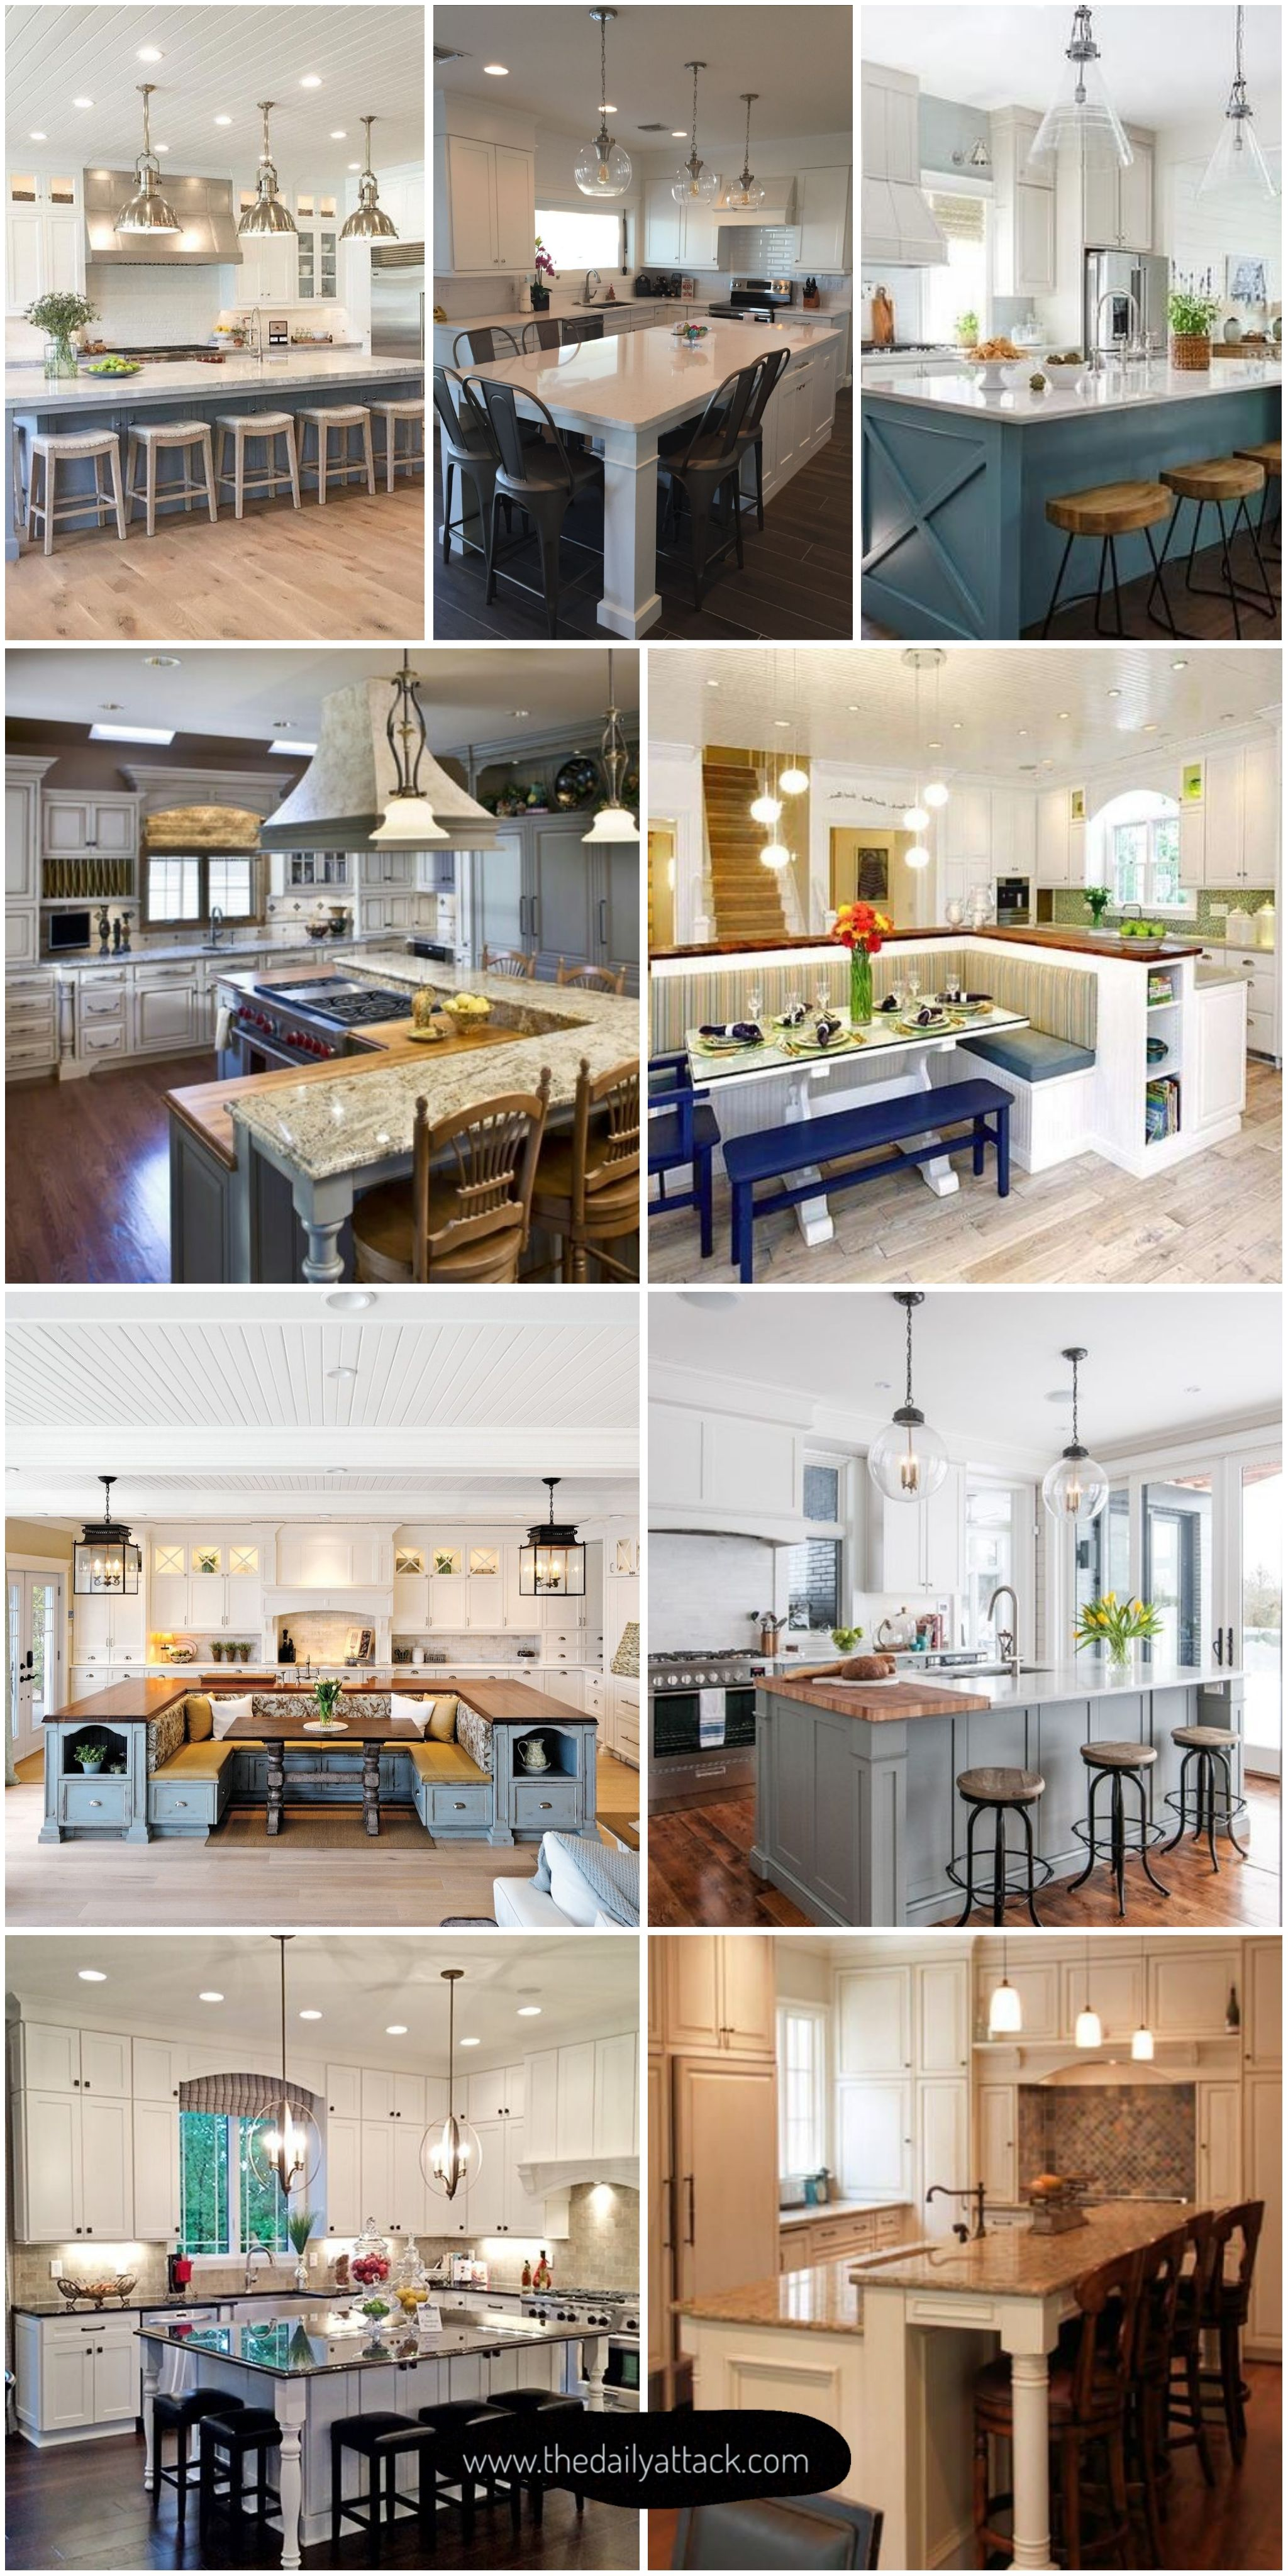 Small kitchen island decor ideas also unique for every space and budget the best rh pinterest